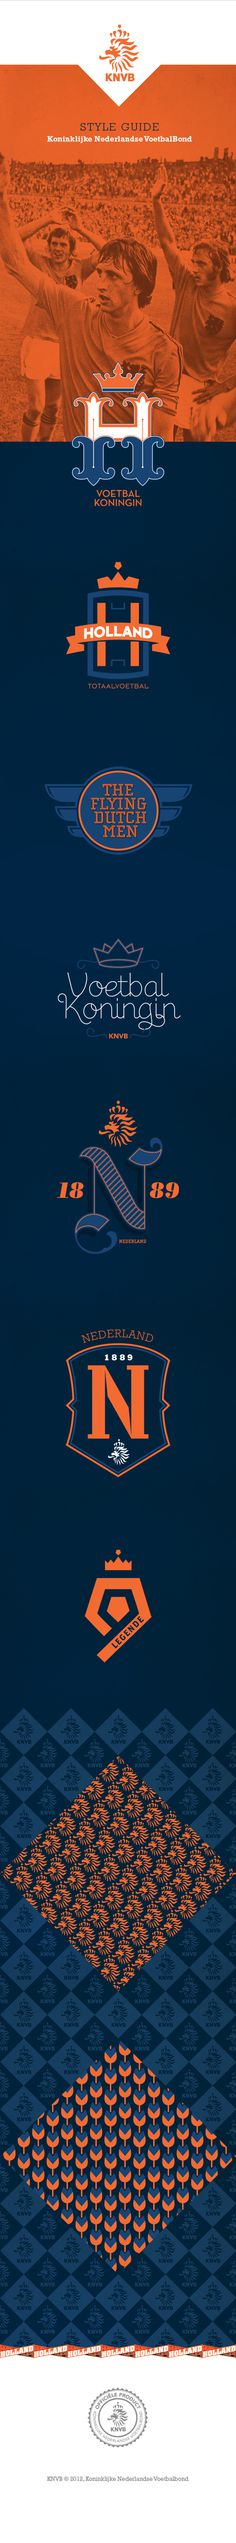 KNVB on Behance